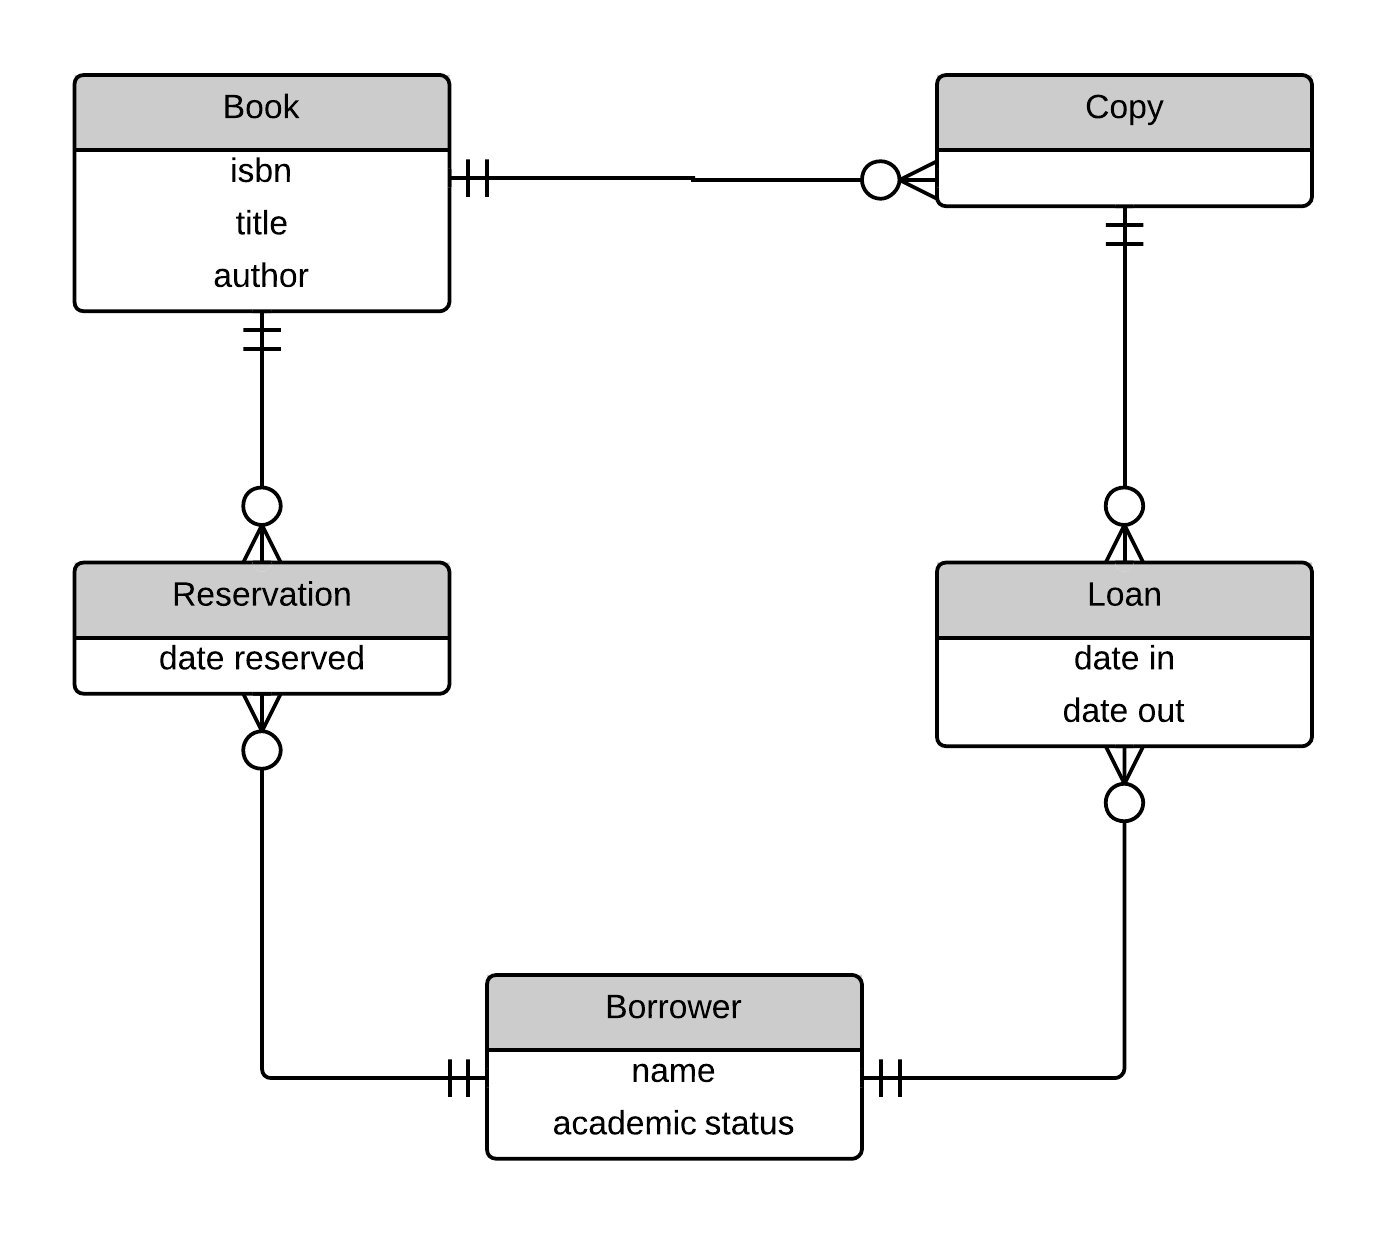 Designing Warehouses, Libraries, And Car Rentals | James T Vu intended for Er Diagram Examples For Car Rental System